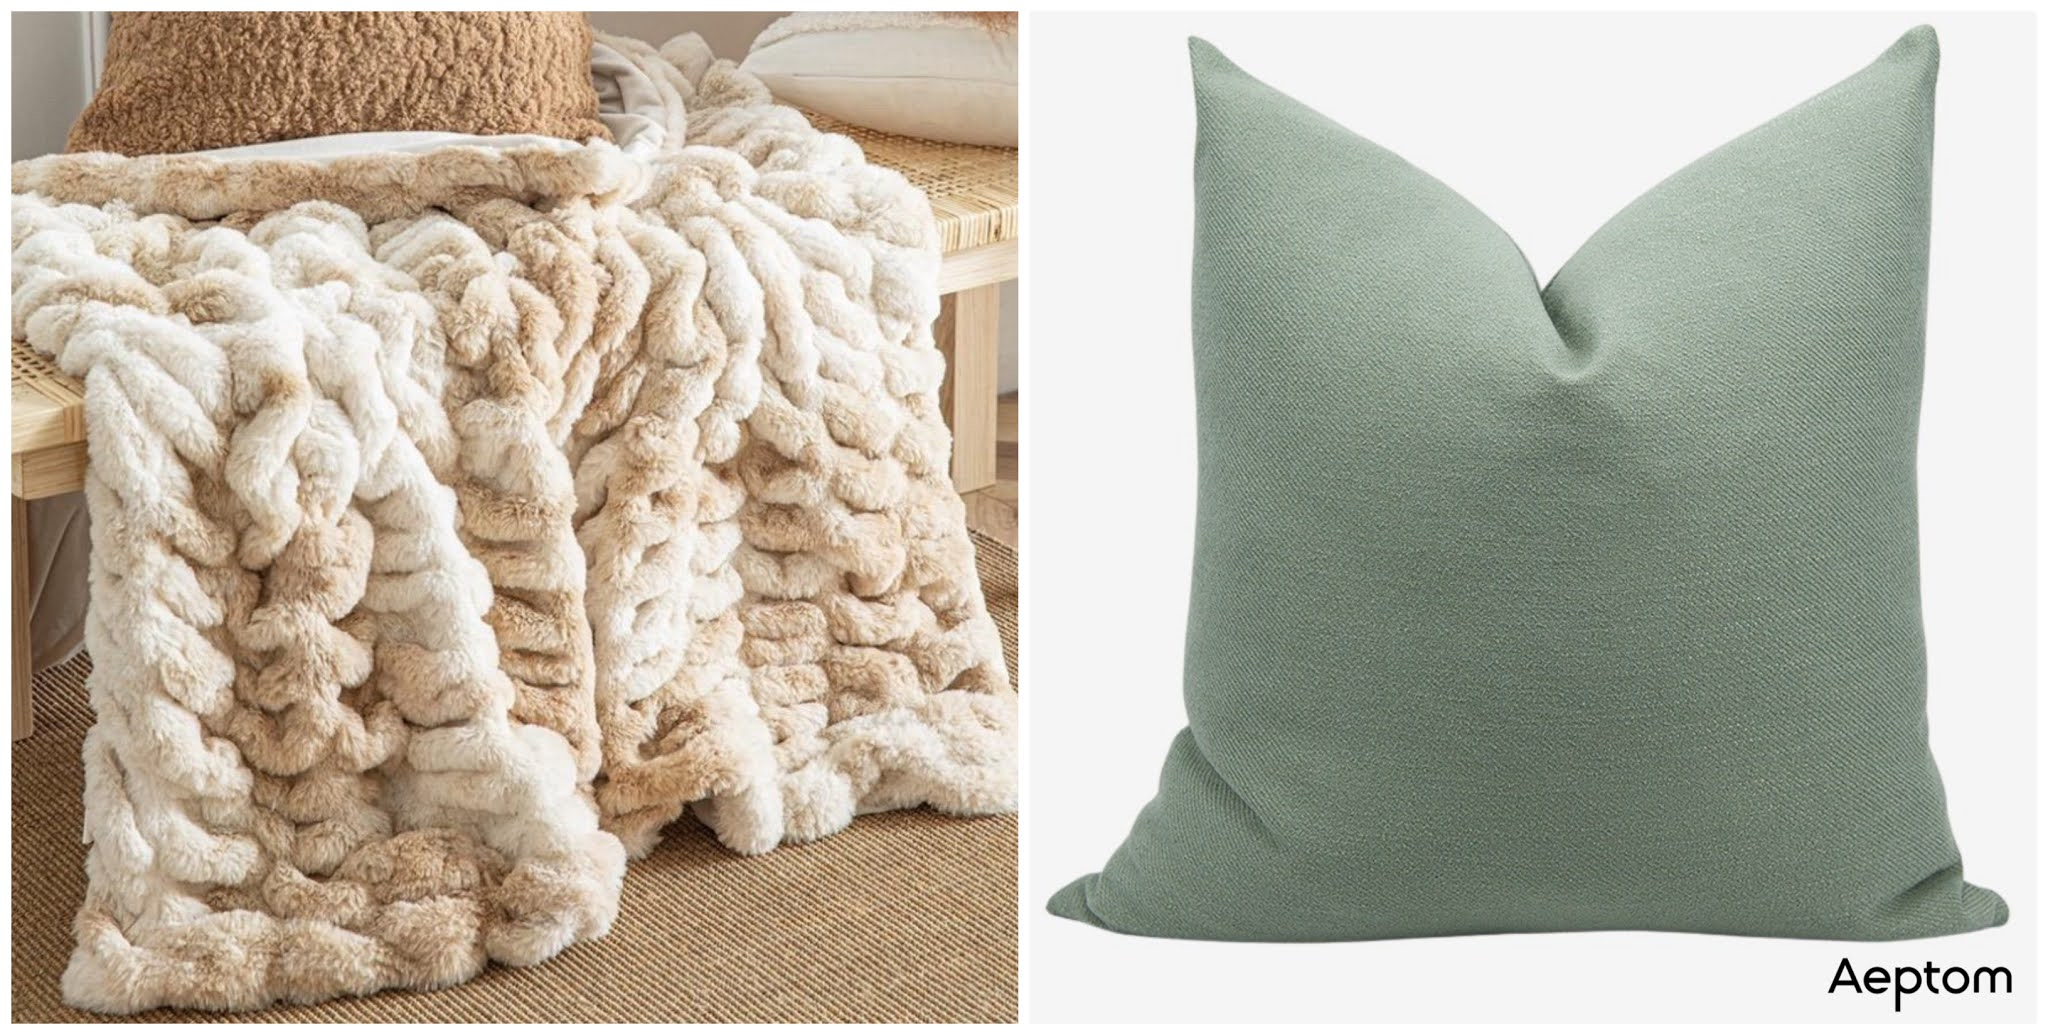 fur blanket and throw pillow